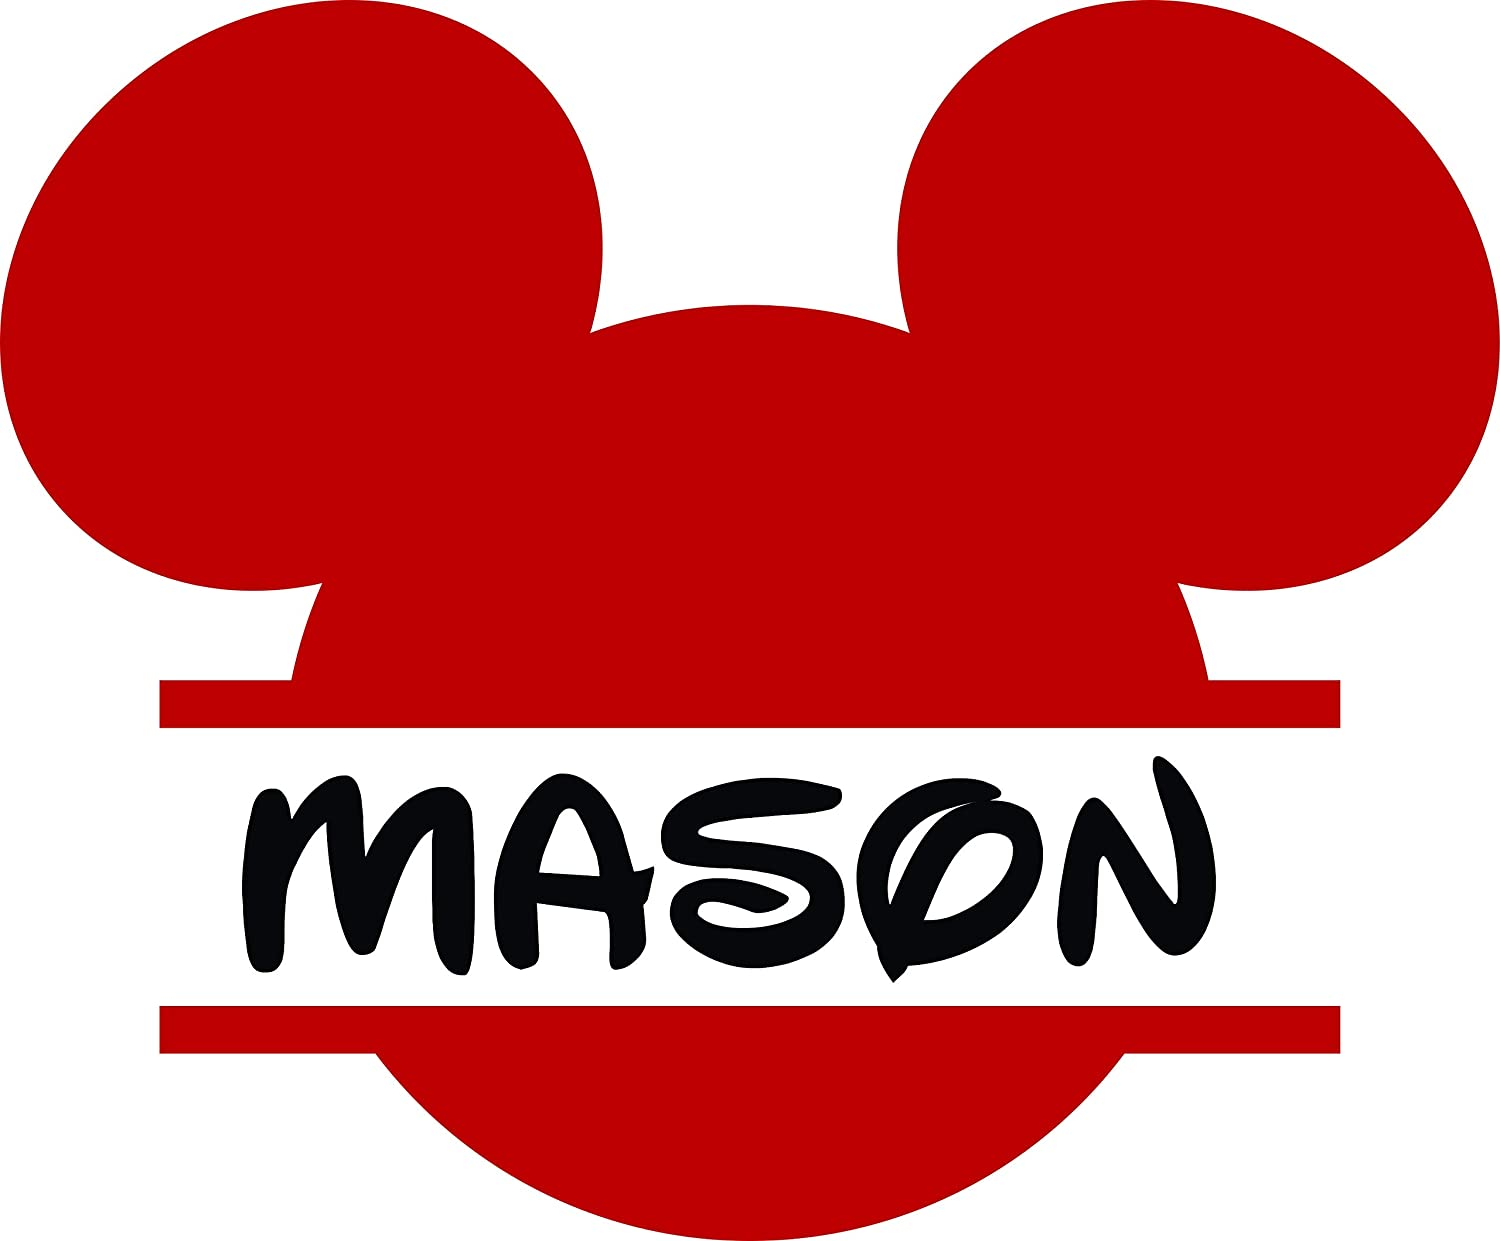 Personalized Girls Boys Name Signs - Name Wall Decal - Monogram Sticker - Mickey Mouse Decal- Cartoon Name Decal 20x20 Inches